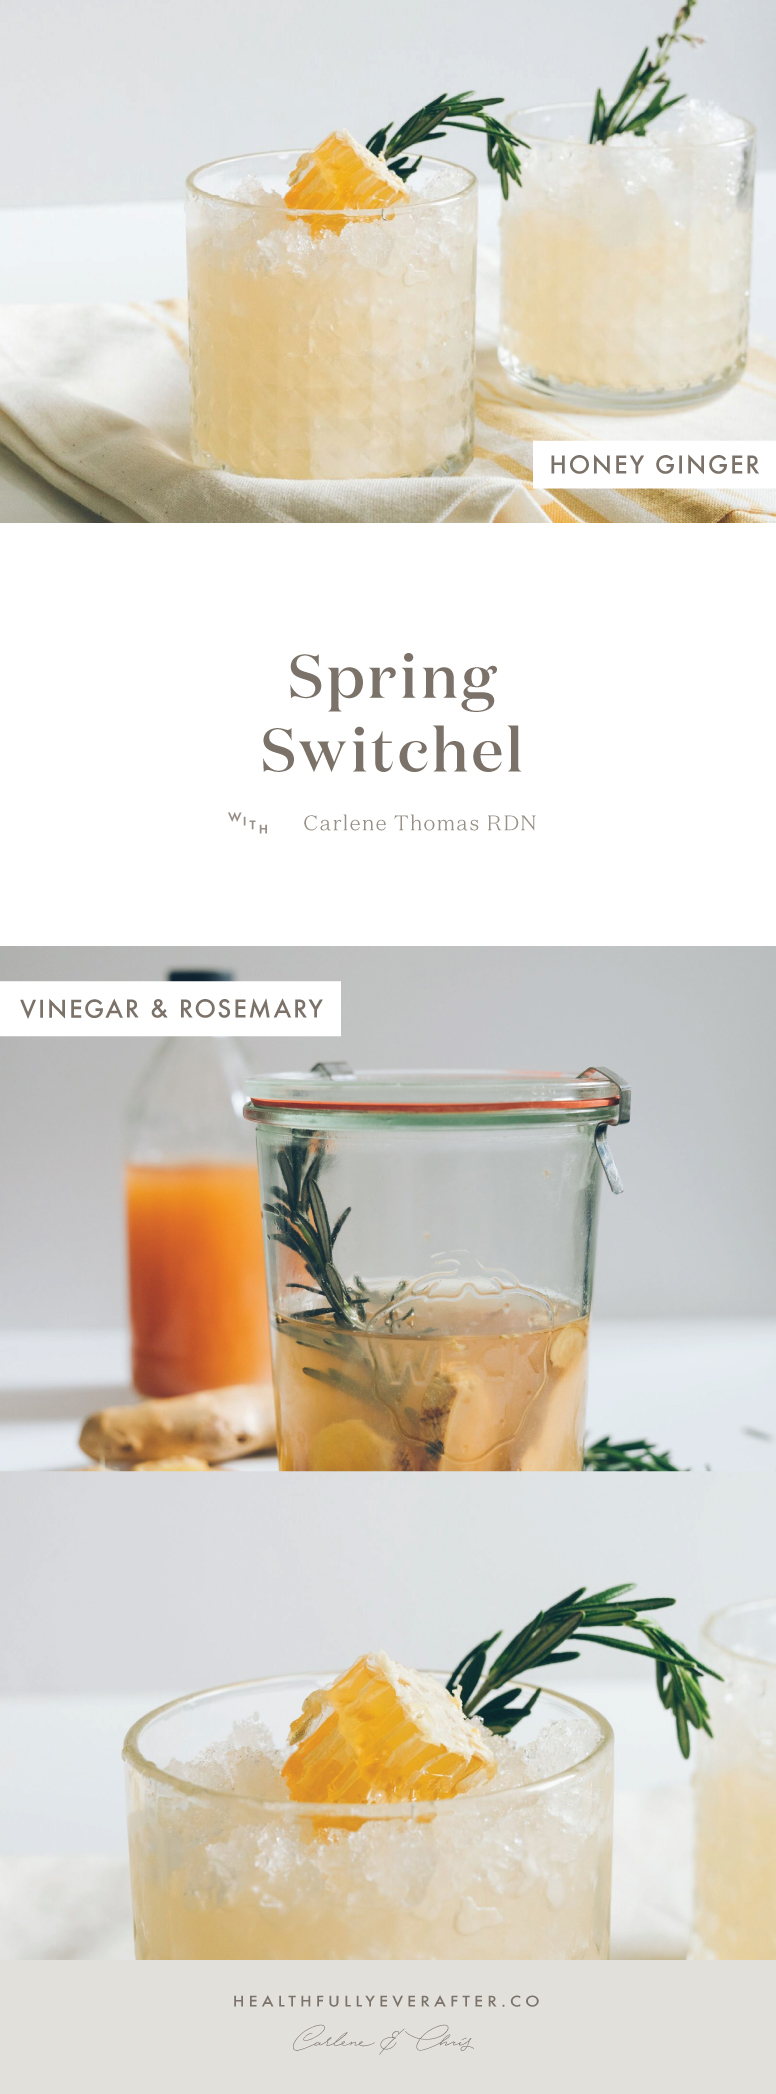 spring switchel drink